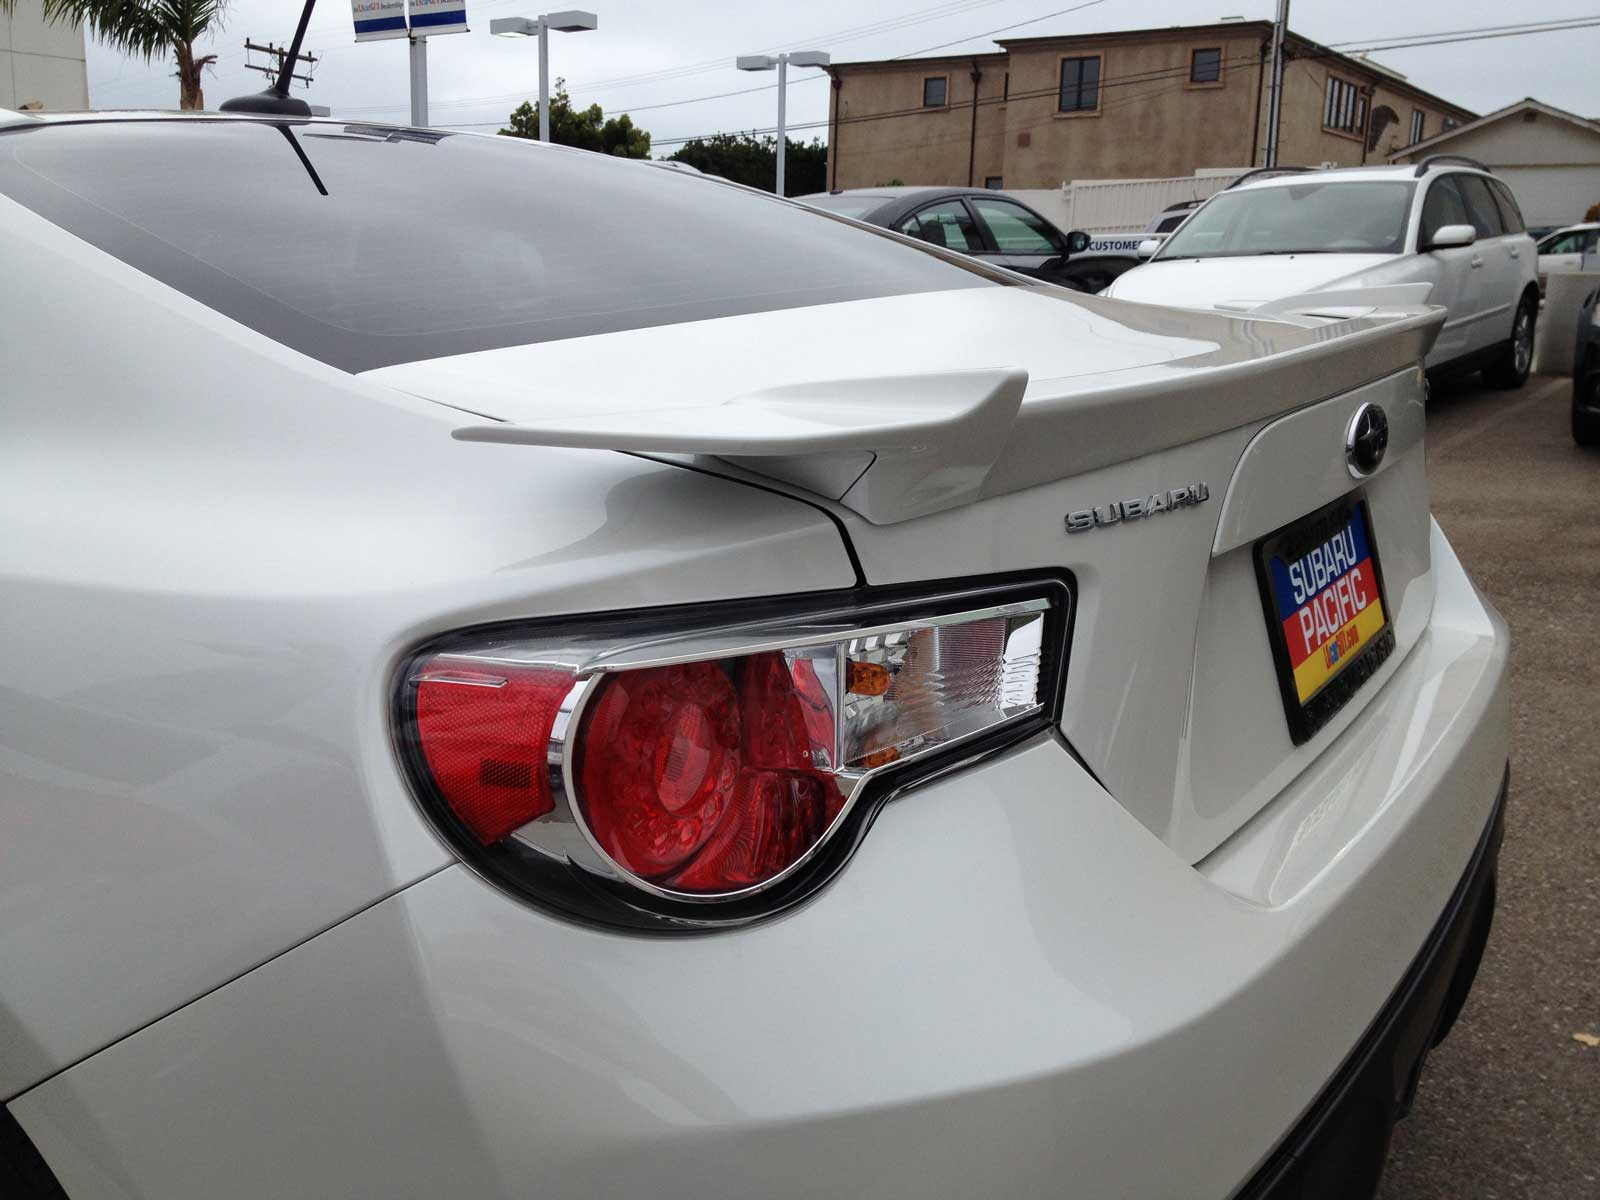 Subaru S 2013 Brz Sports Coupe Is A Revelation Todd Bianco S Acarisnotarefrigerator Com Blog